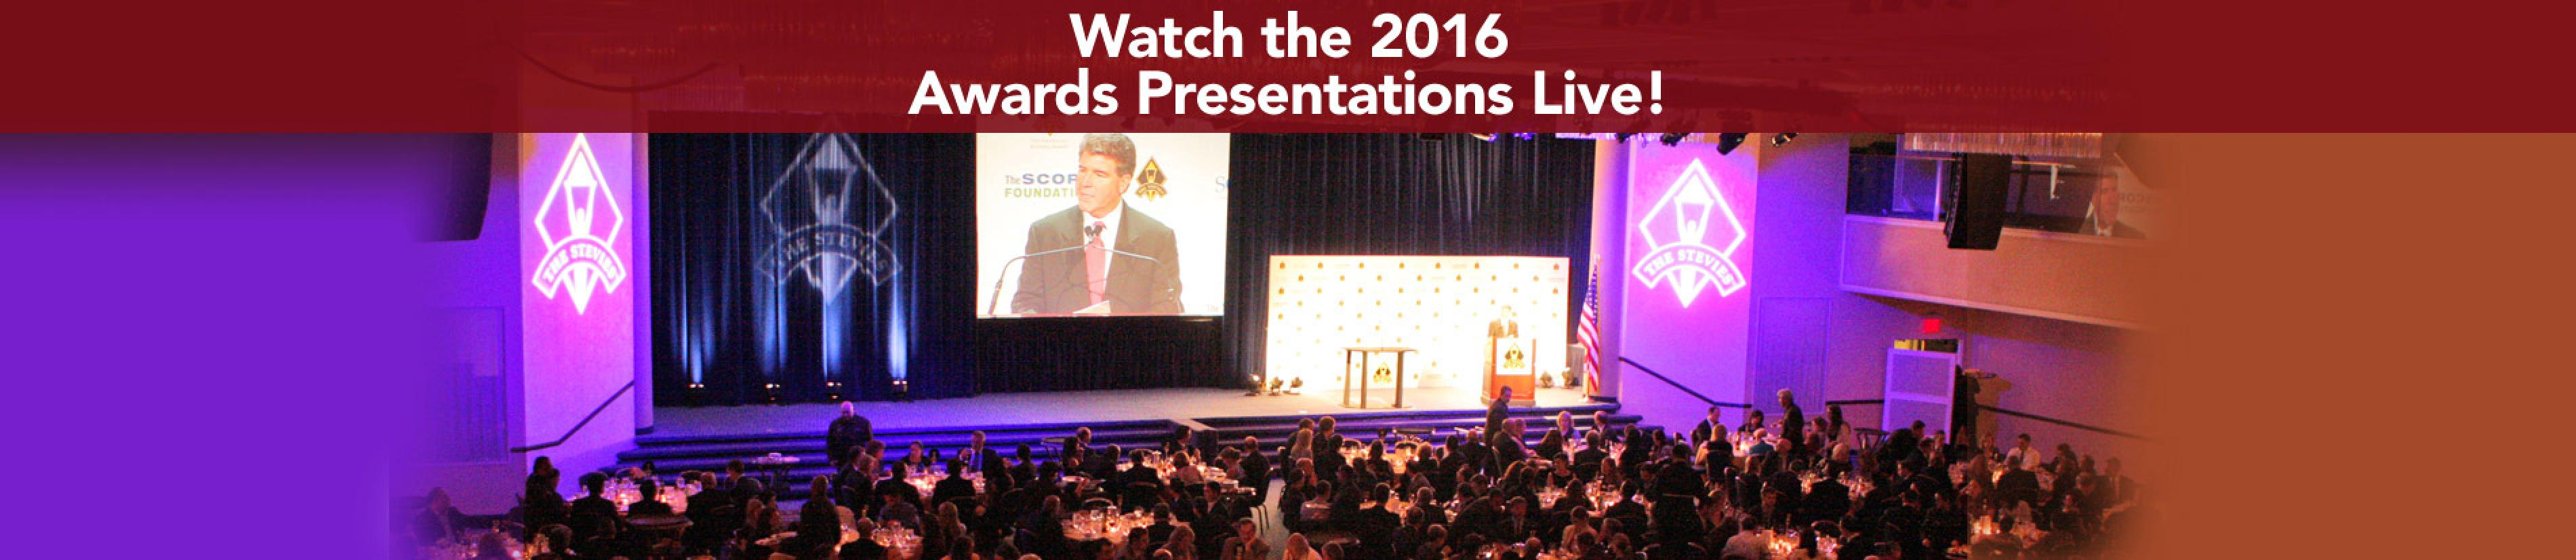 Watch the awards presentations live